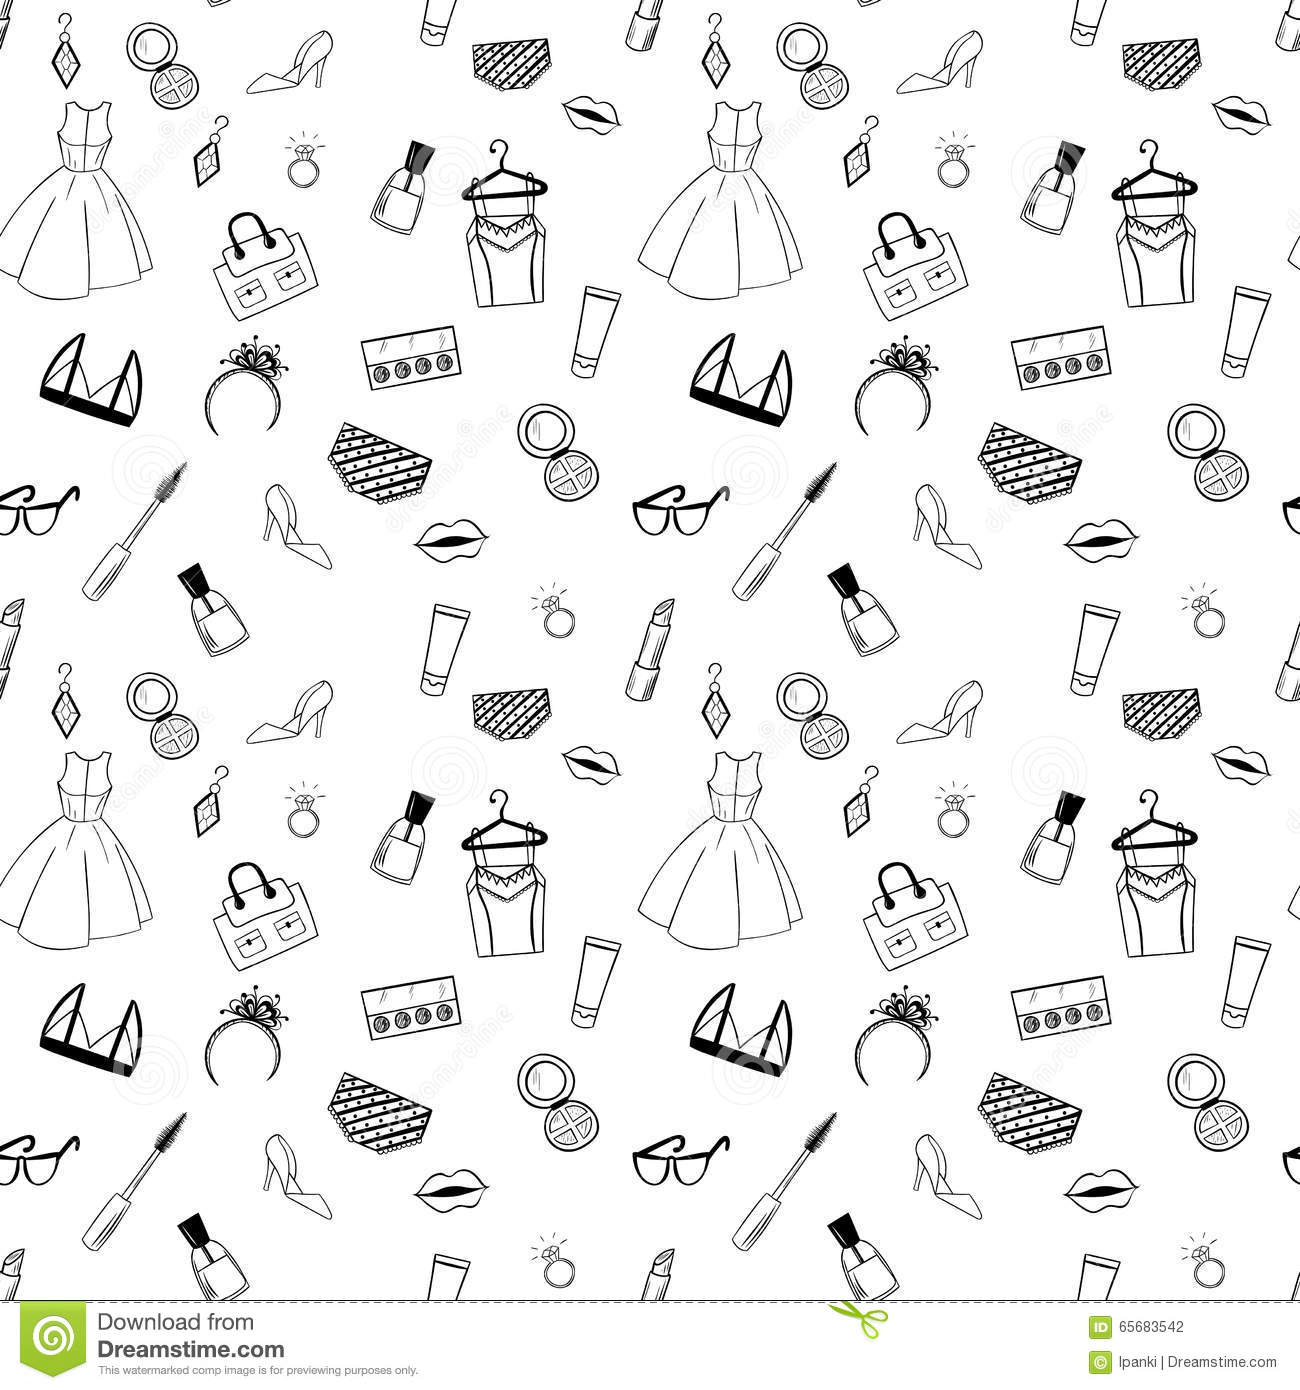 Coloring sheet hand - Hand Drawn Fashion Seamless Pattern For Adult Coloring Pages